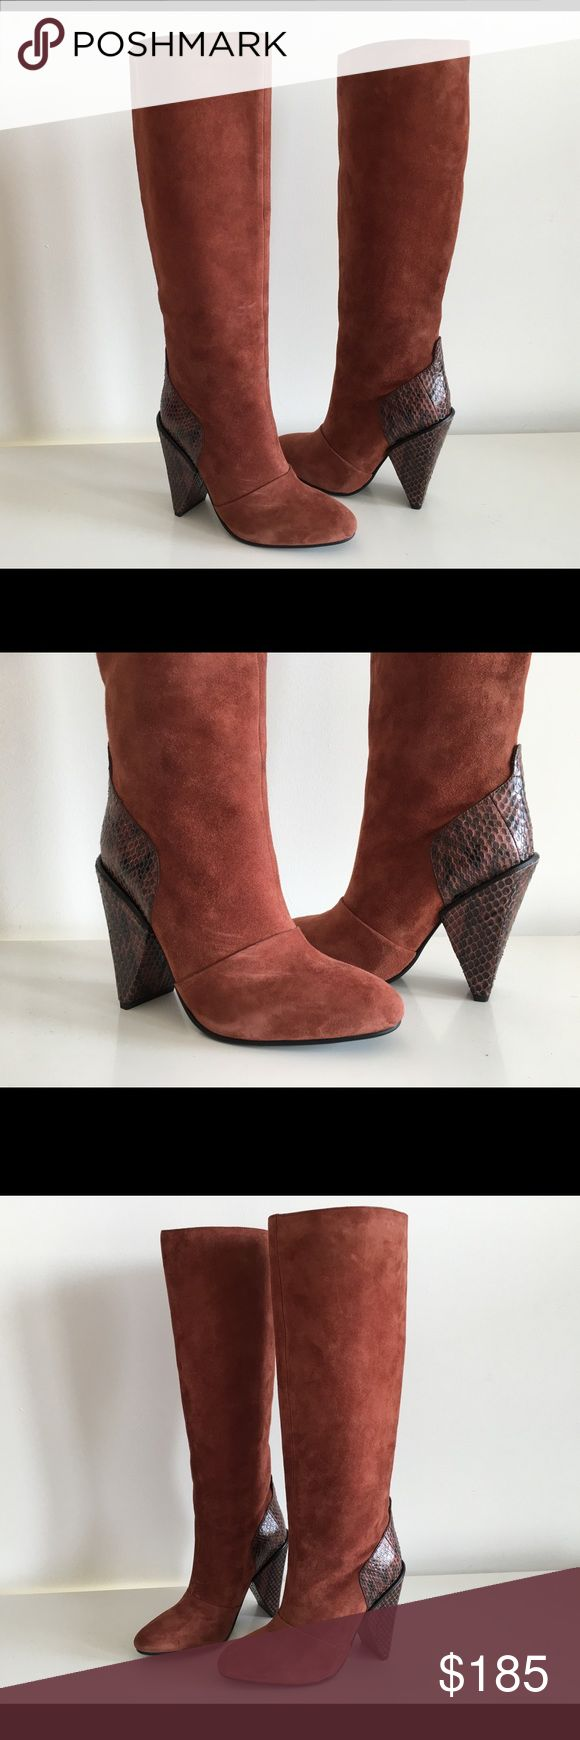 "SEE BY CHLOE BROWN SUEDE LEATHER TALL BOOTS, SZ 36 SEE BY CHLOE BROWN SUEDE LEATHER TALL BOOTS, WITH SNAKESKIN LEATHER AT HEEL, SIZE 36, BLOCK HEEL 4"", SHAFT 14"", TOP CIRCUMFERENCE 13"", CALF CIRCUMFERENCE 12"", PULL-ON, BRAND NEW WITHOUT BOX See by Chloe Shoes Ankle Boots & Booties"